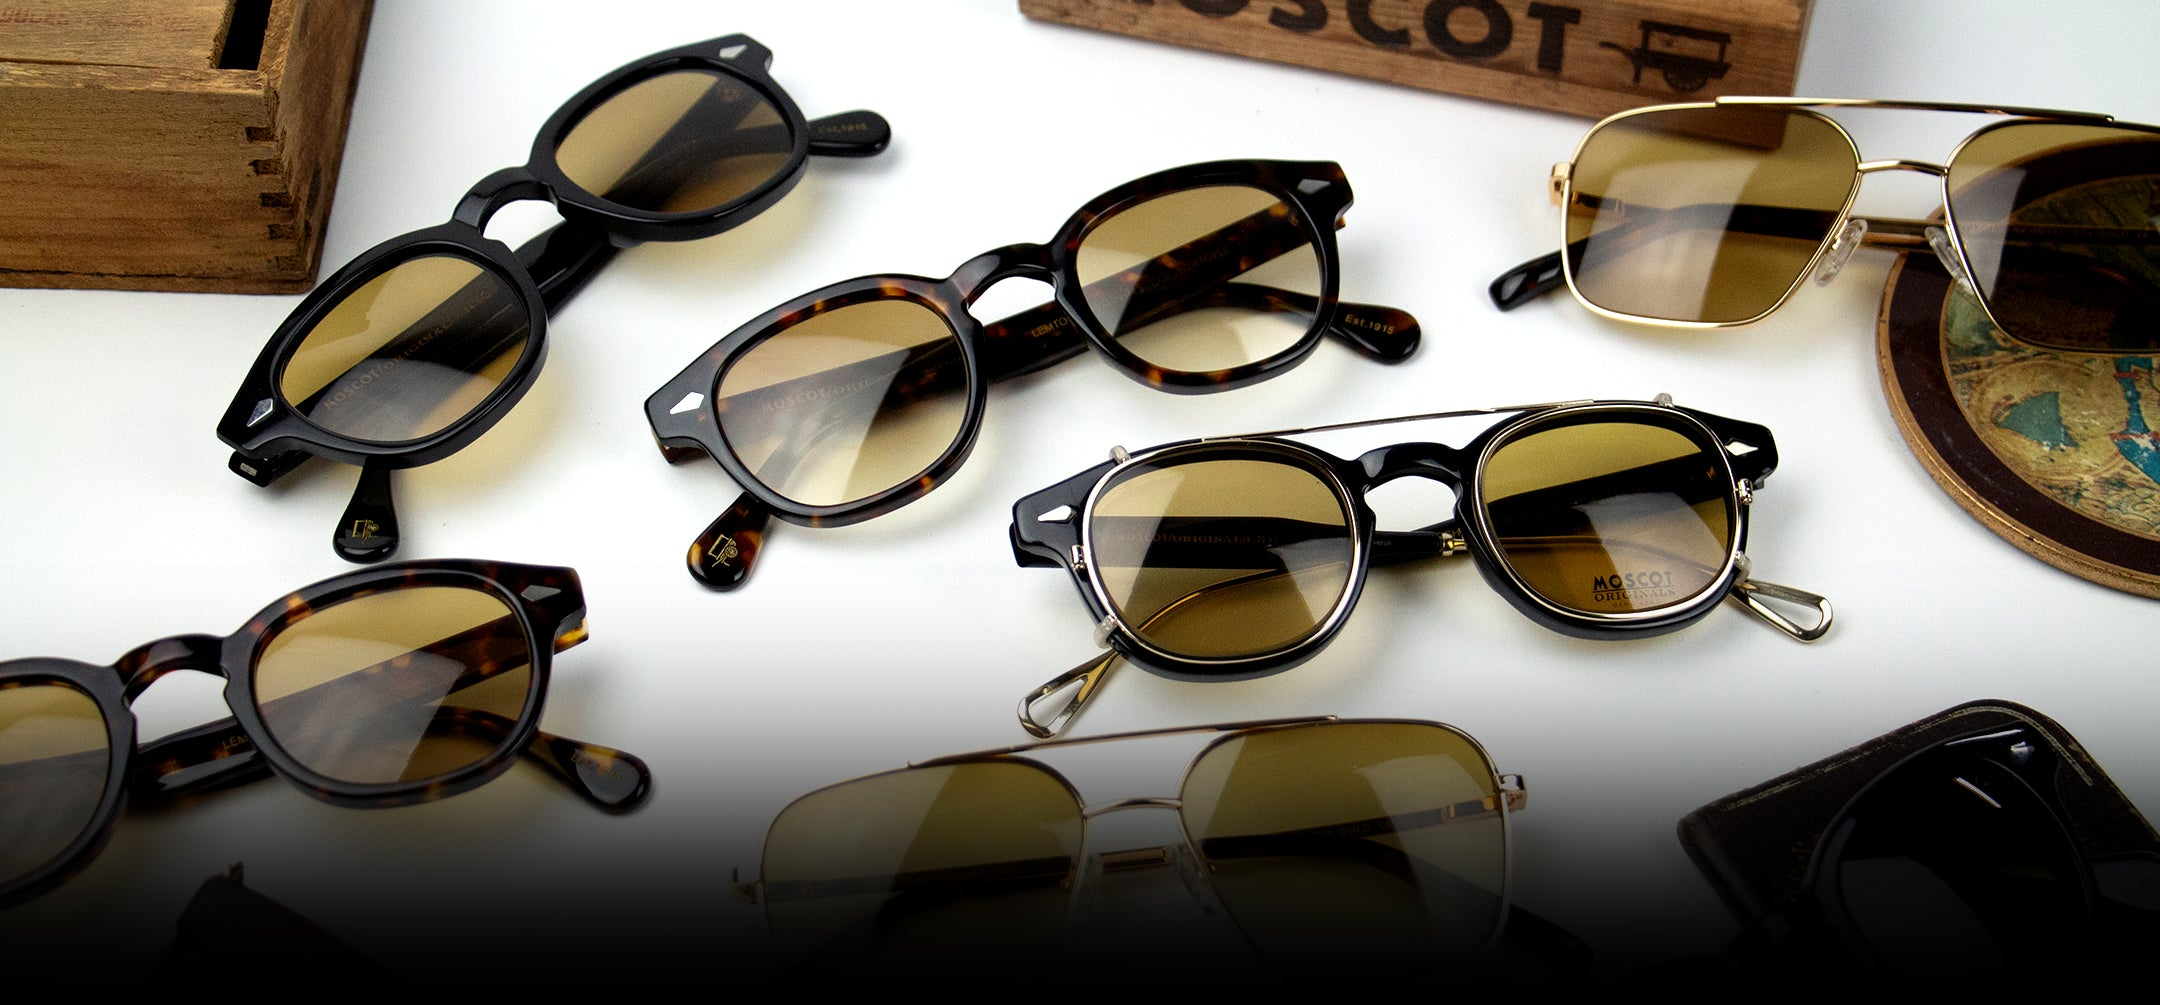 eee21cd0b36 MOSCOT Eyewear - NYC Since 1915